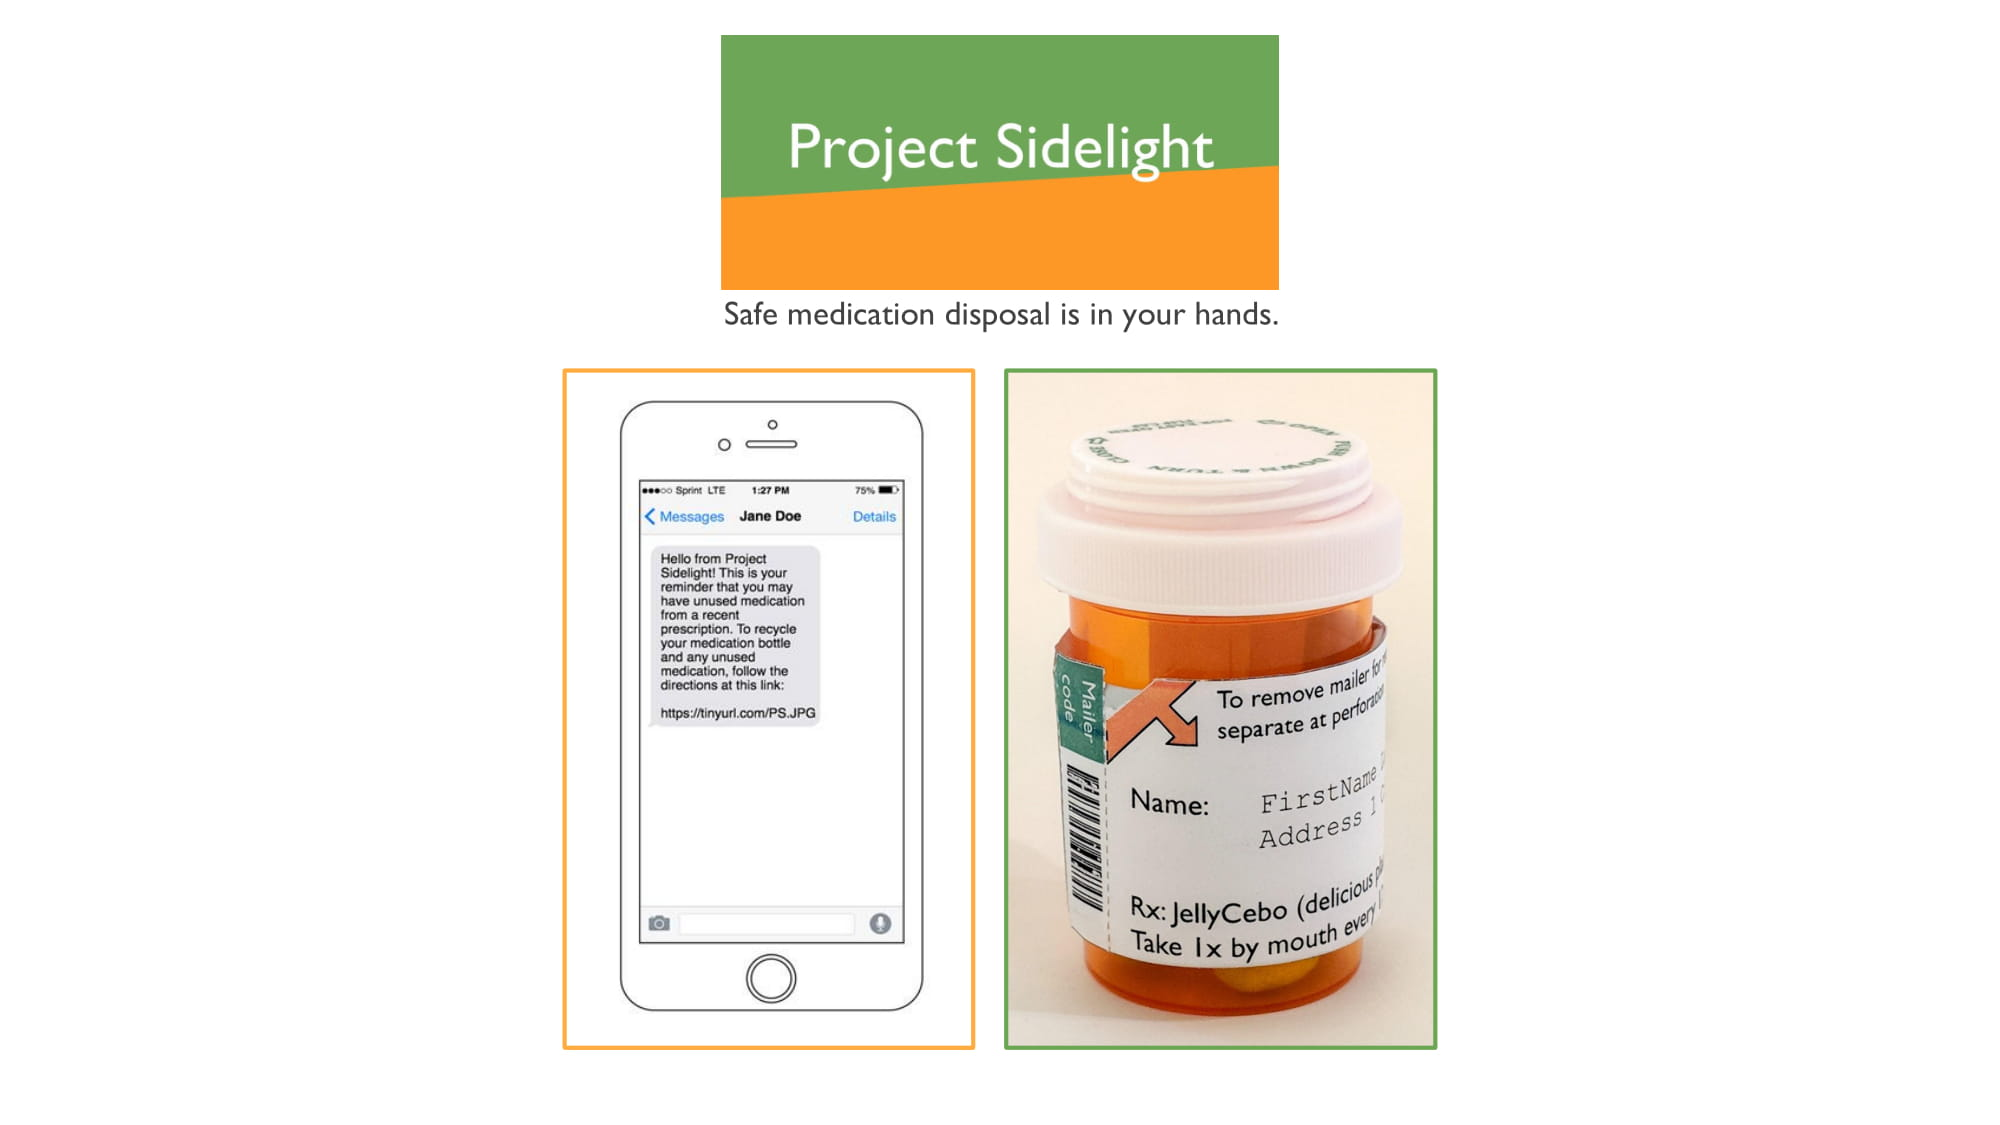 Project Sidelight WSDC Submission 2018-35.jpg